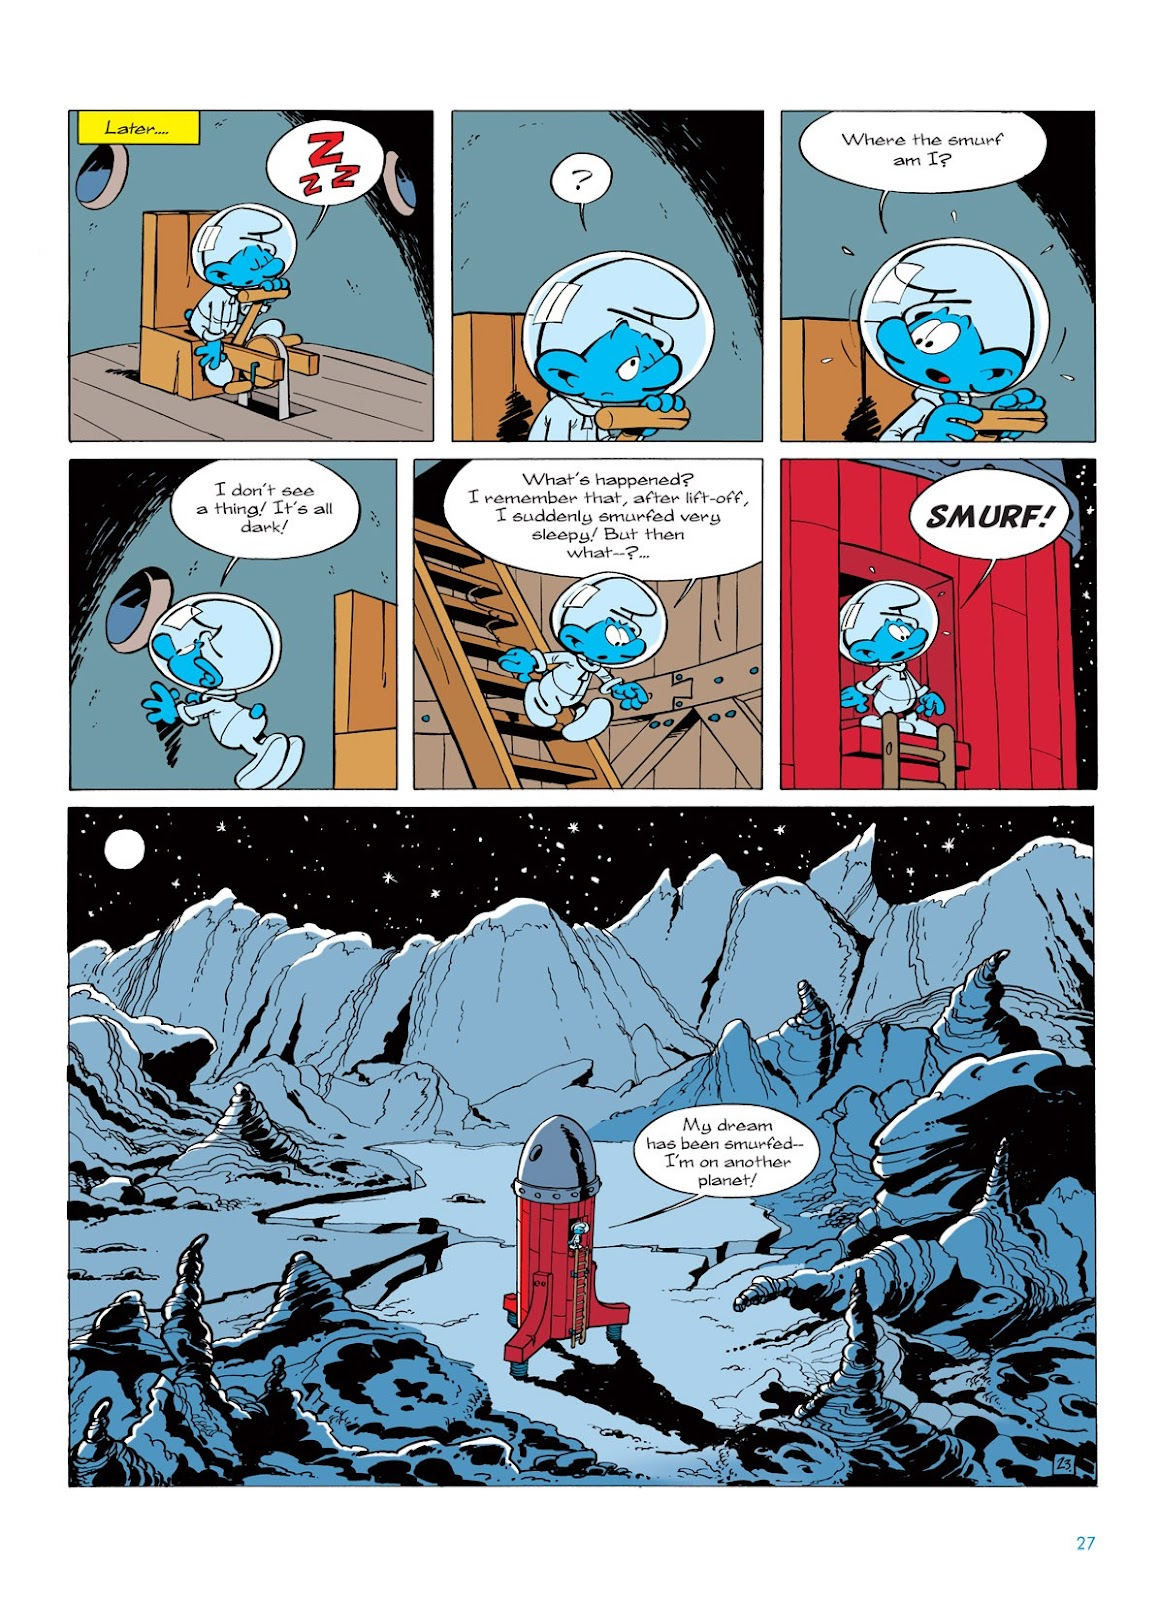 Read online The Smurfs comic -  Issue #7 - 27